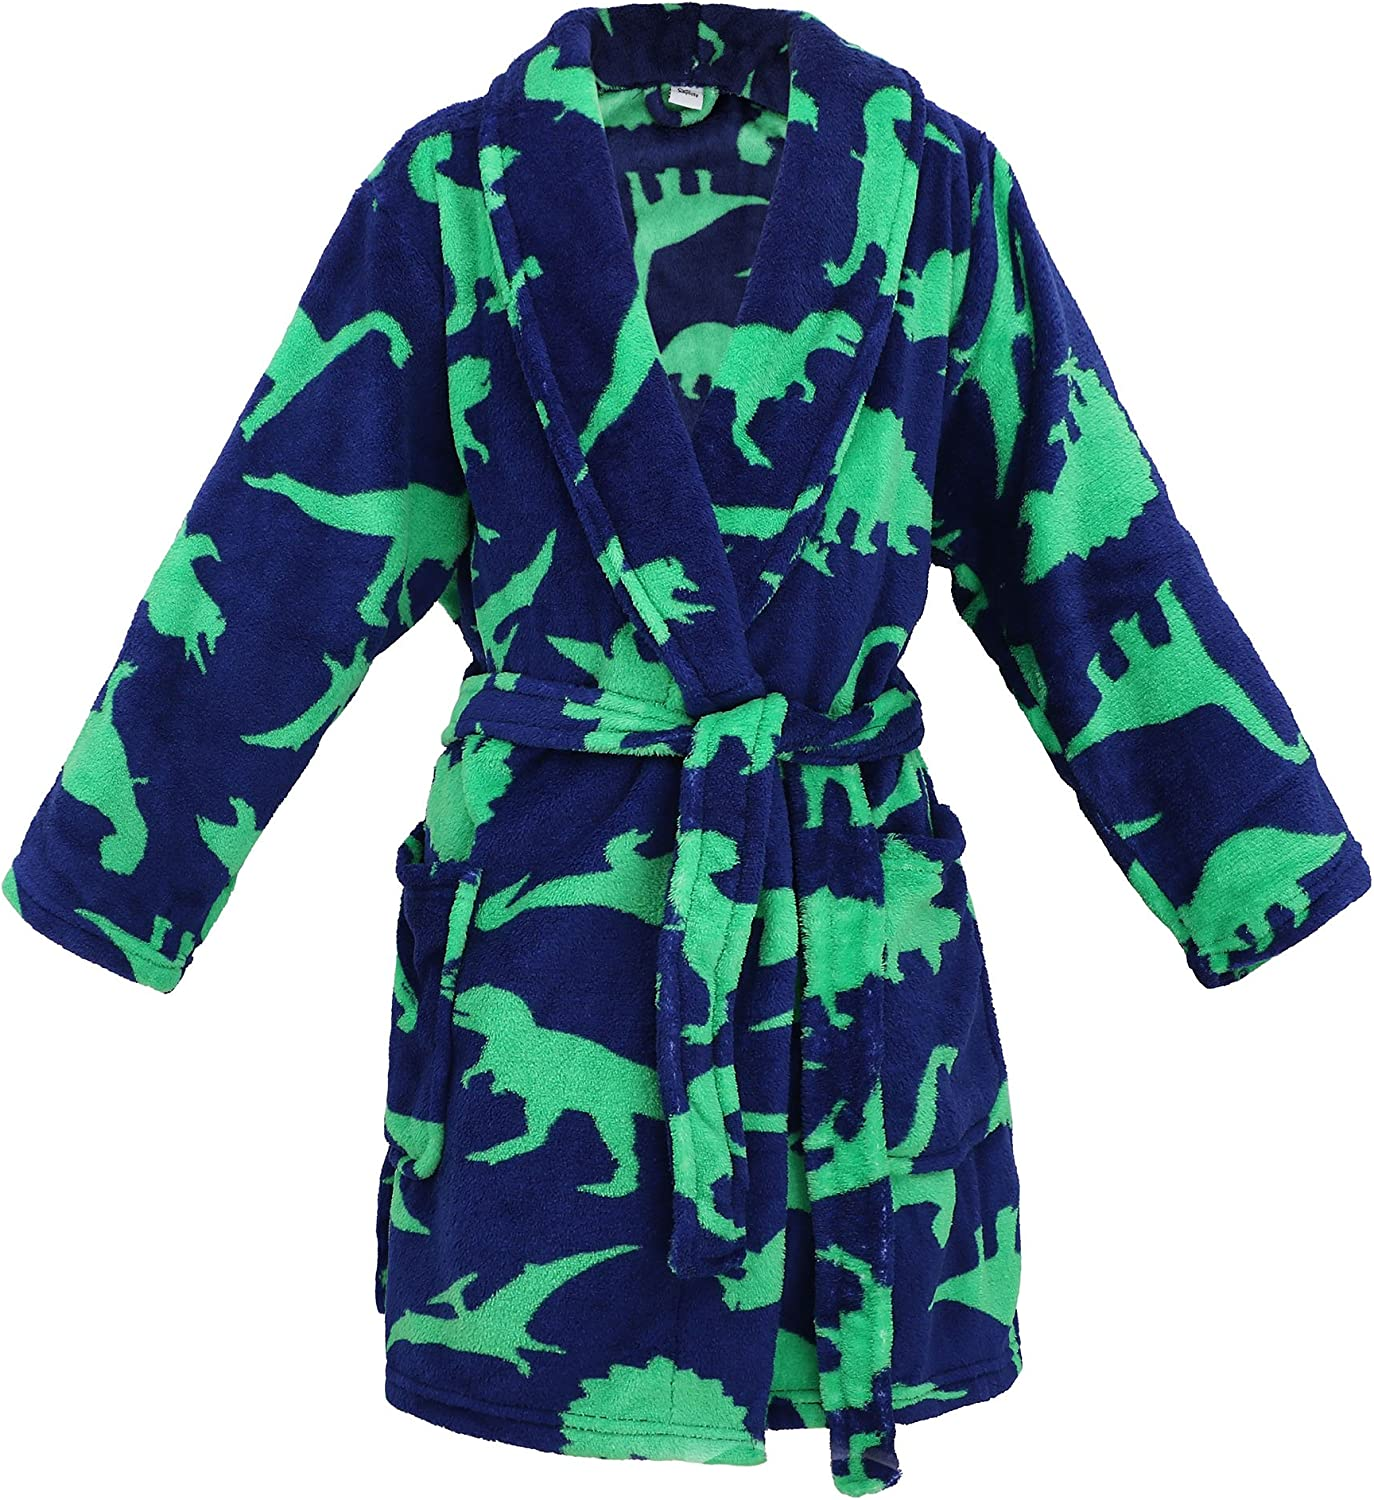 EPYA Kids Boys and Girls Outdoor Pool Coverup and Beach Coverup